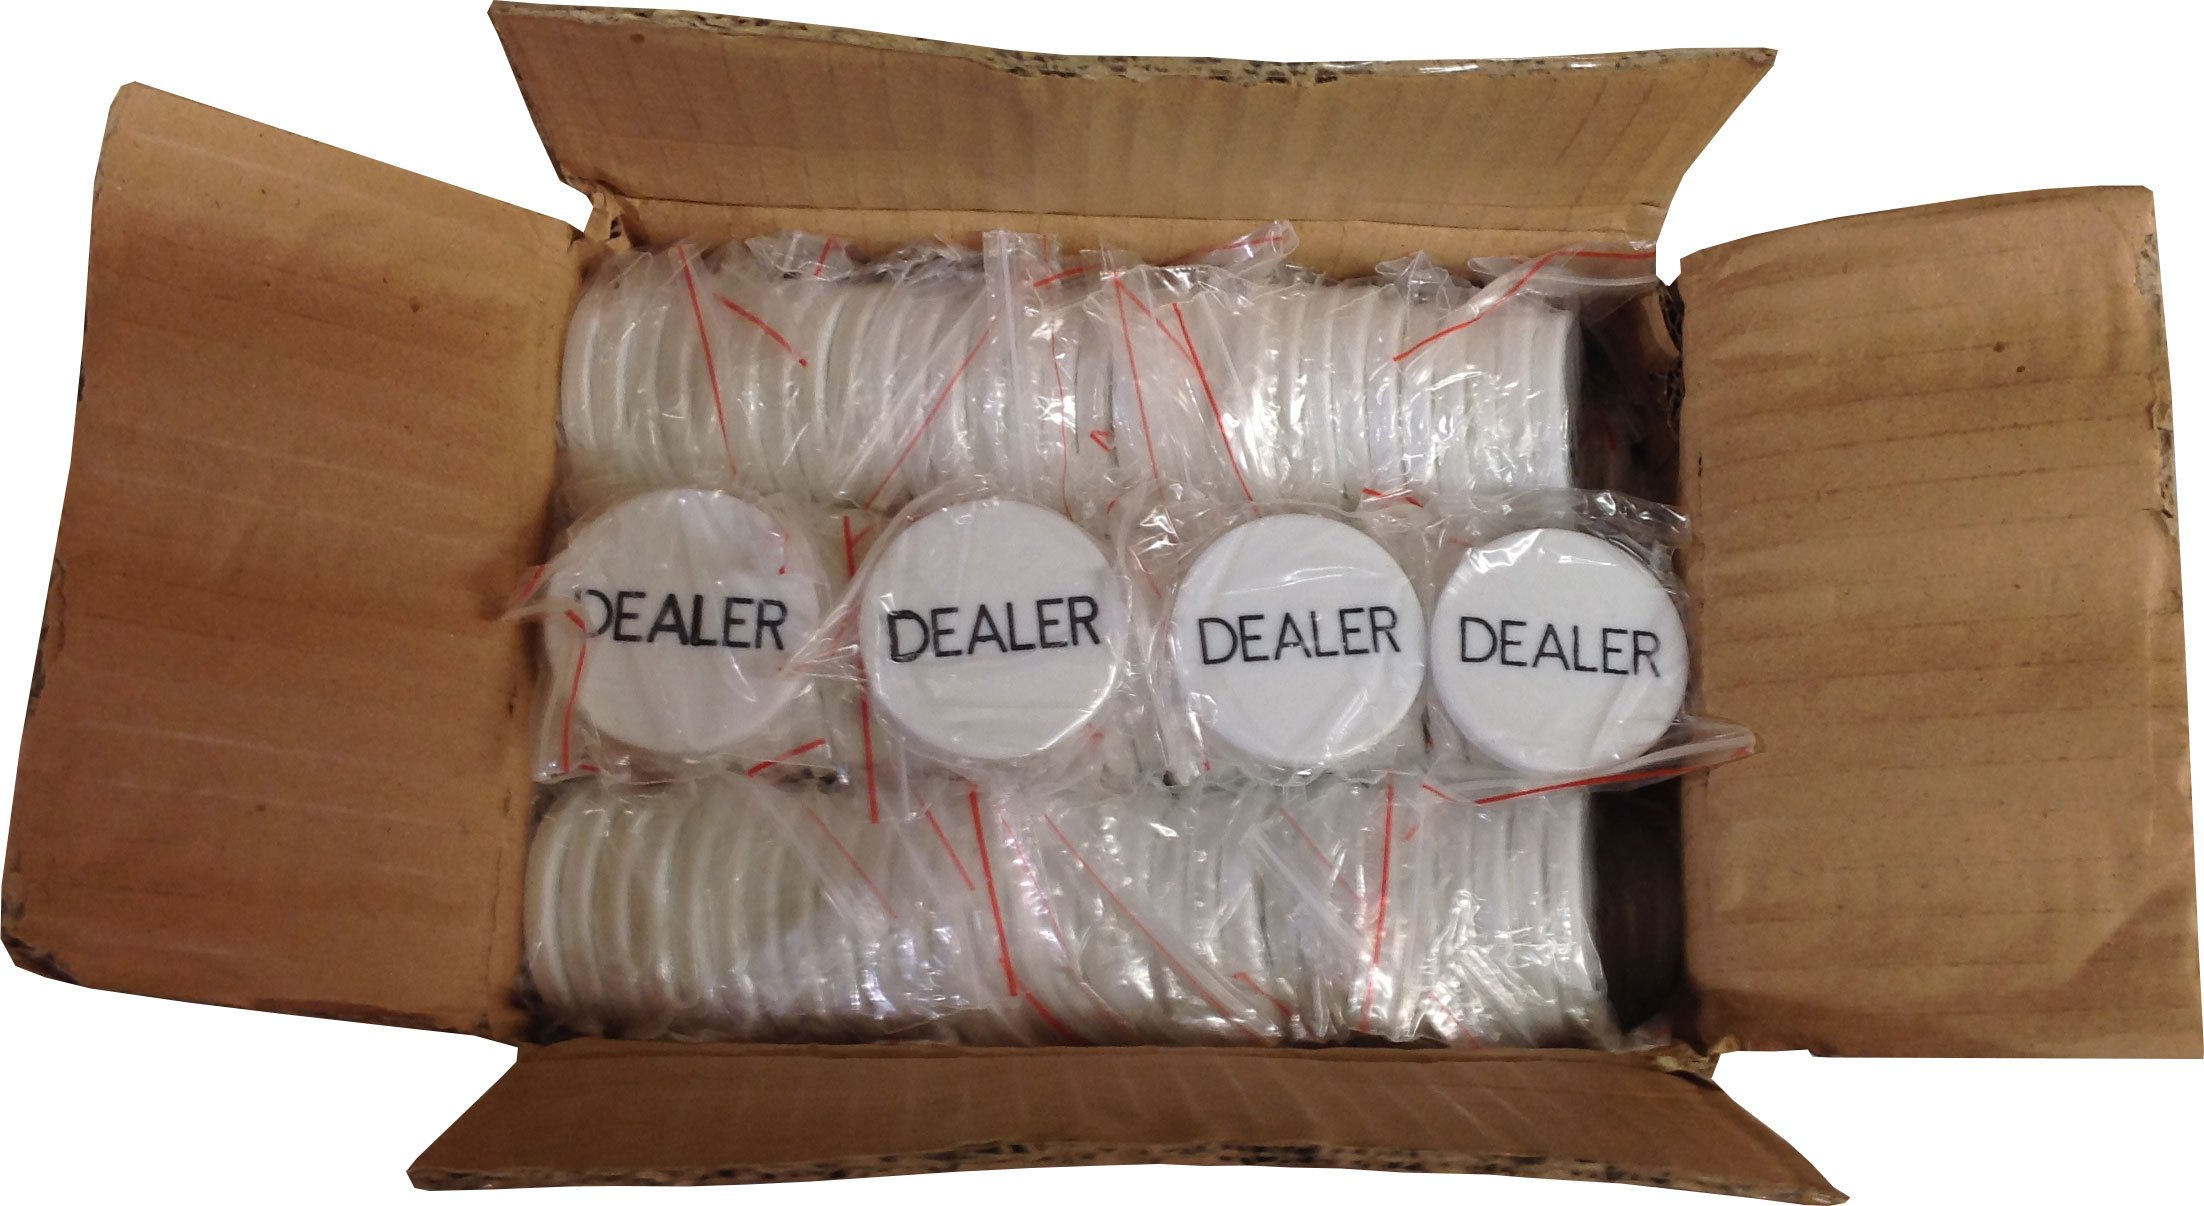 288 Real DEALER BUTTONS for POKER HOLD'EM Casino Las Vegas Tournament Style NEW